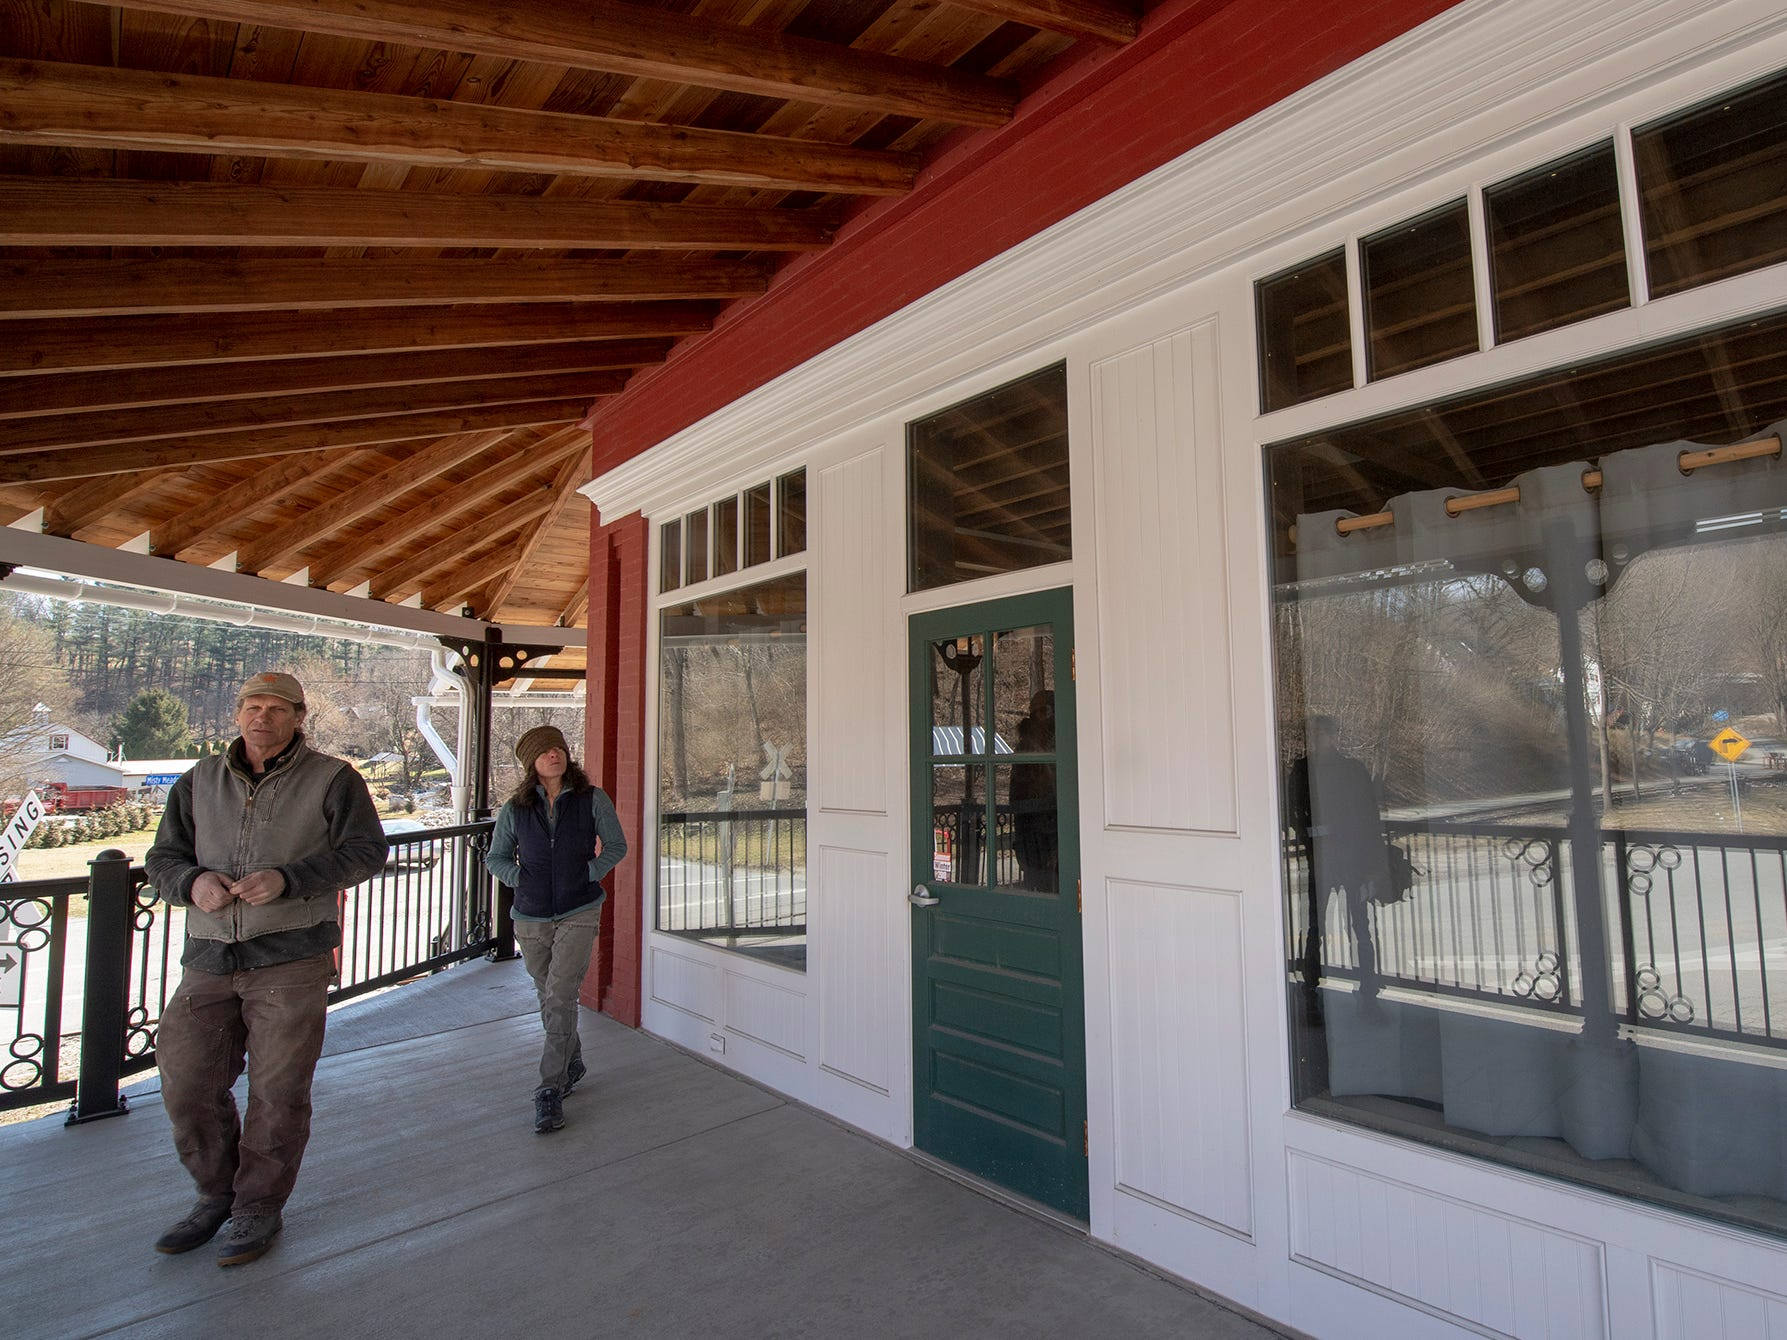 David Keller, left, and Ellen Darby walk on the porch of the   Seitzland store. The storefront was rebuilt, even replacing brick pillars. The larch pine used in the porch timbers will remain unpainted and age naturally. It was sawmill cut, carpenter bees won't bother it and it is strong enough to be milled in the original dimensions that would have appeared on a porch in 1915.